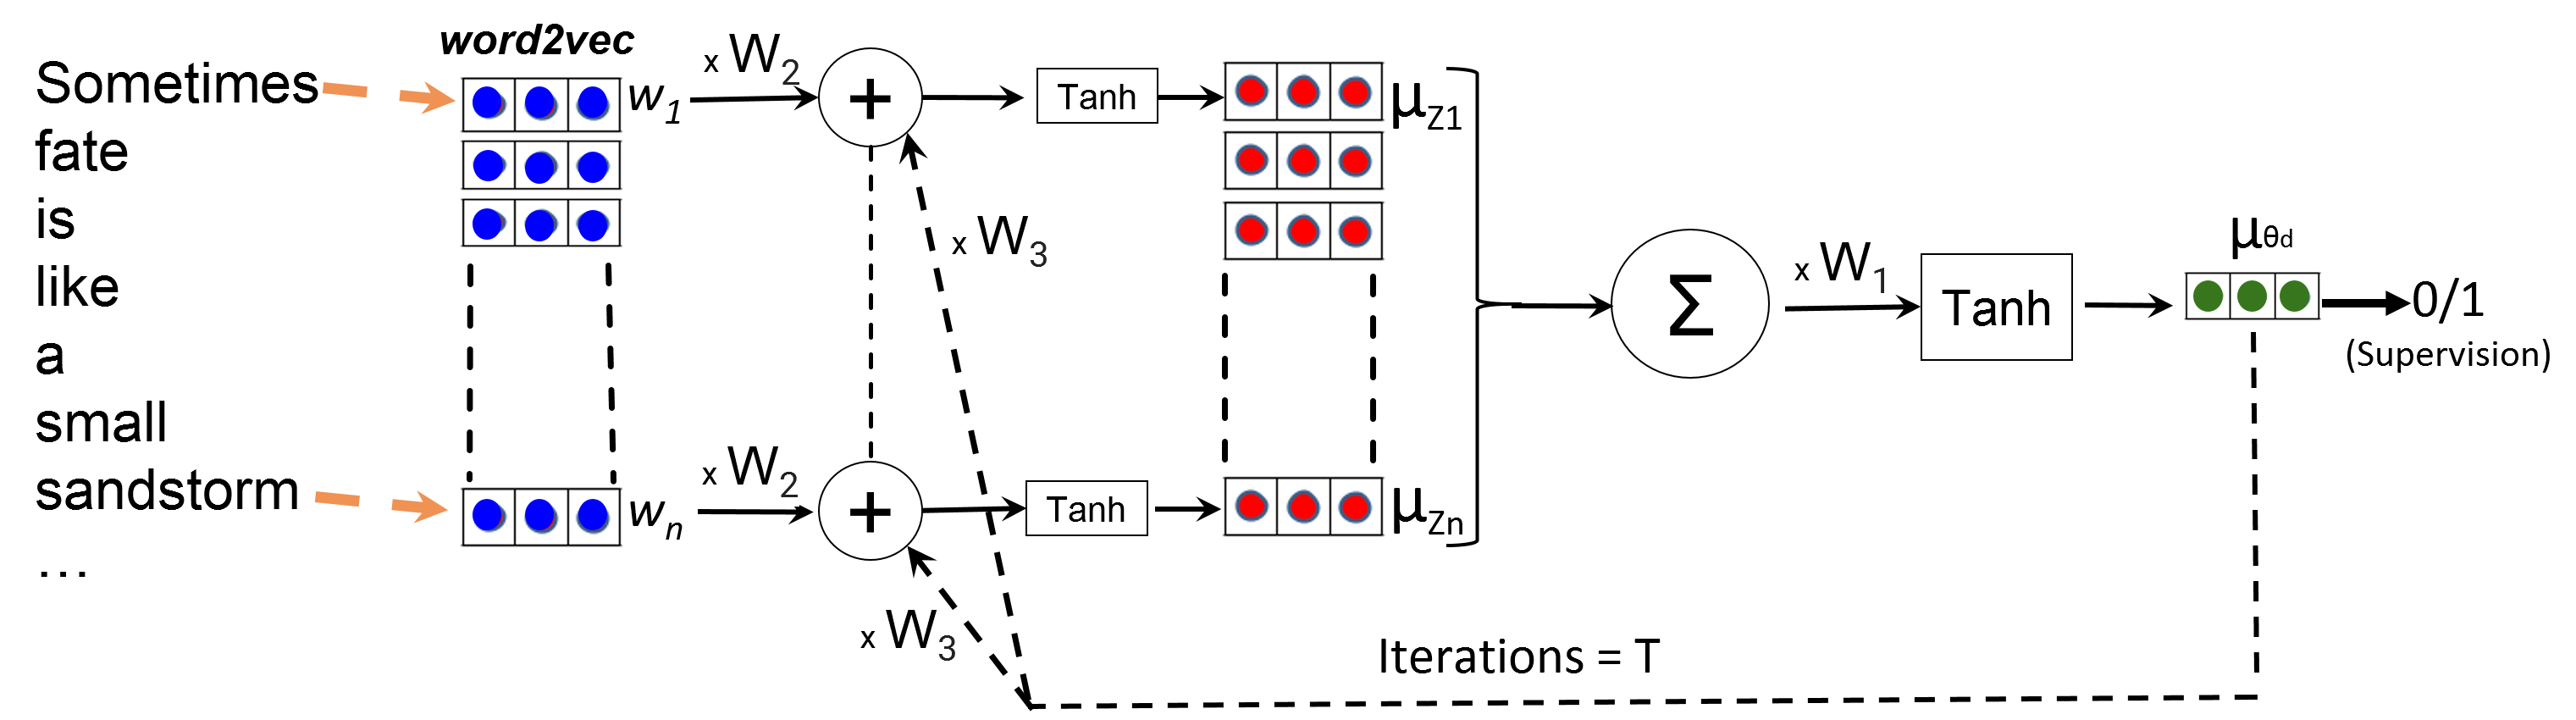 Cooperative Neural Networks (CoNN) — An overview